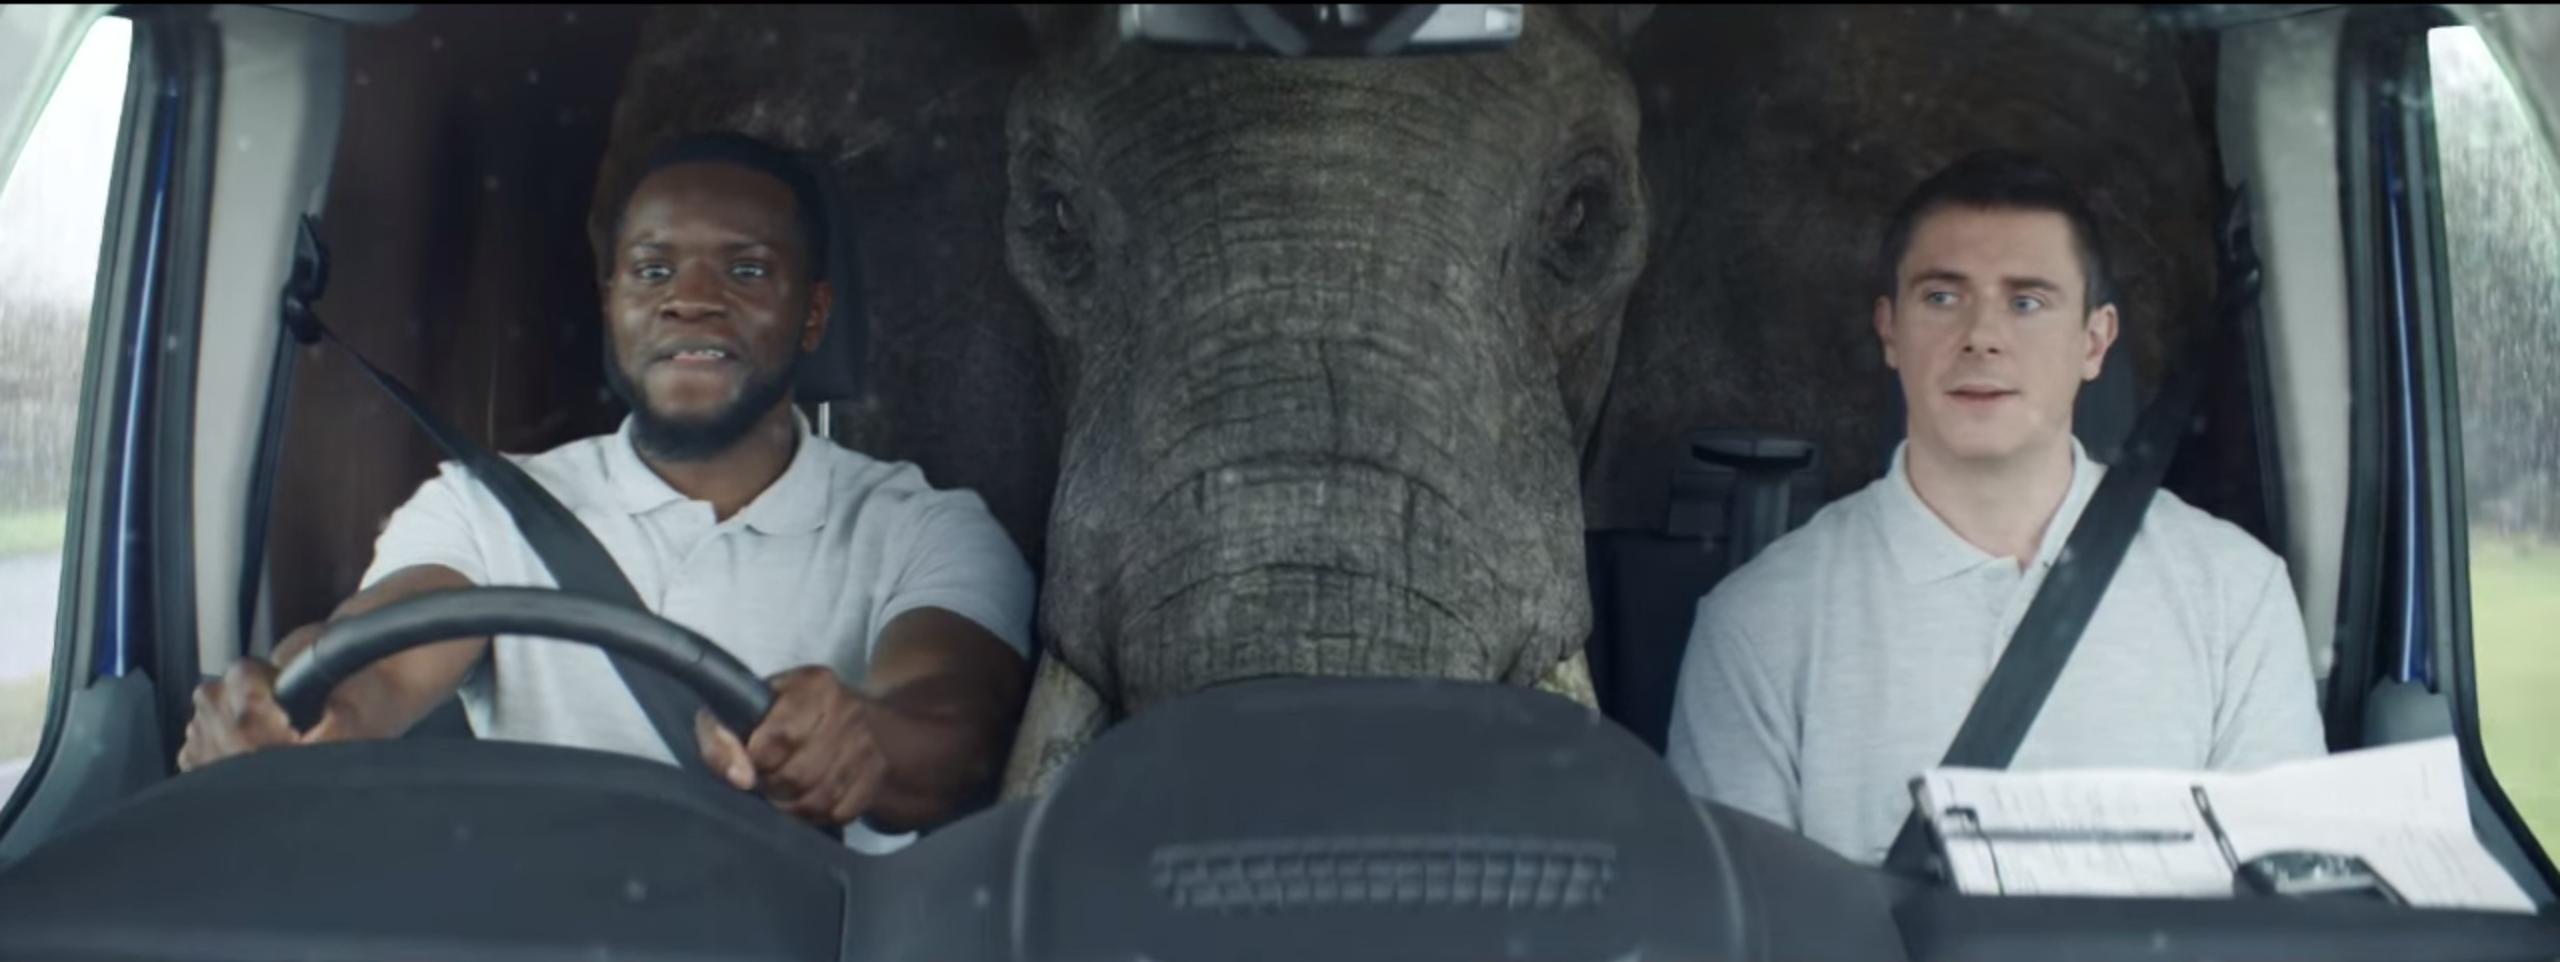 kevin hart driving with elephant